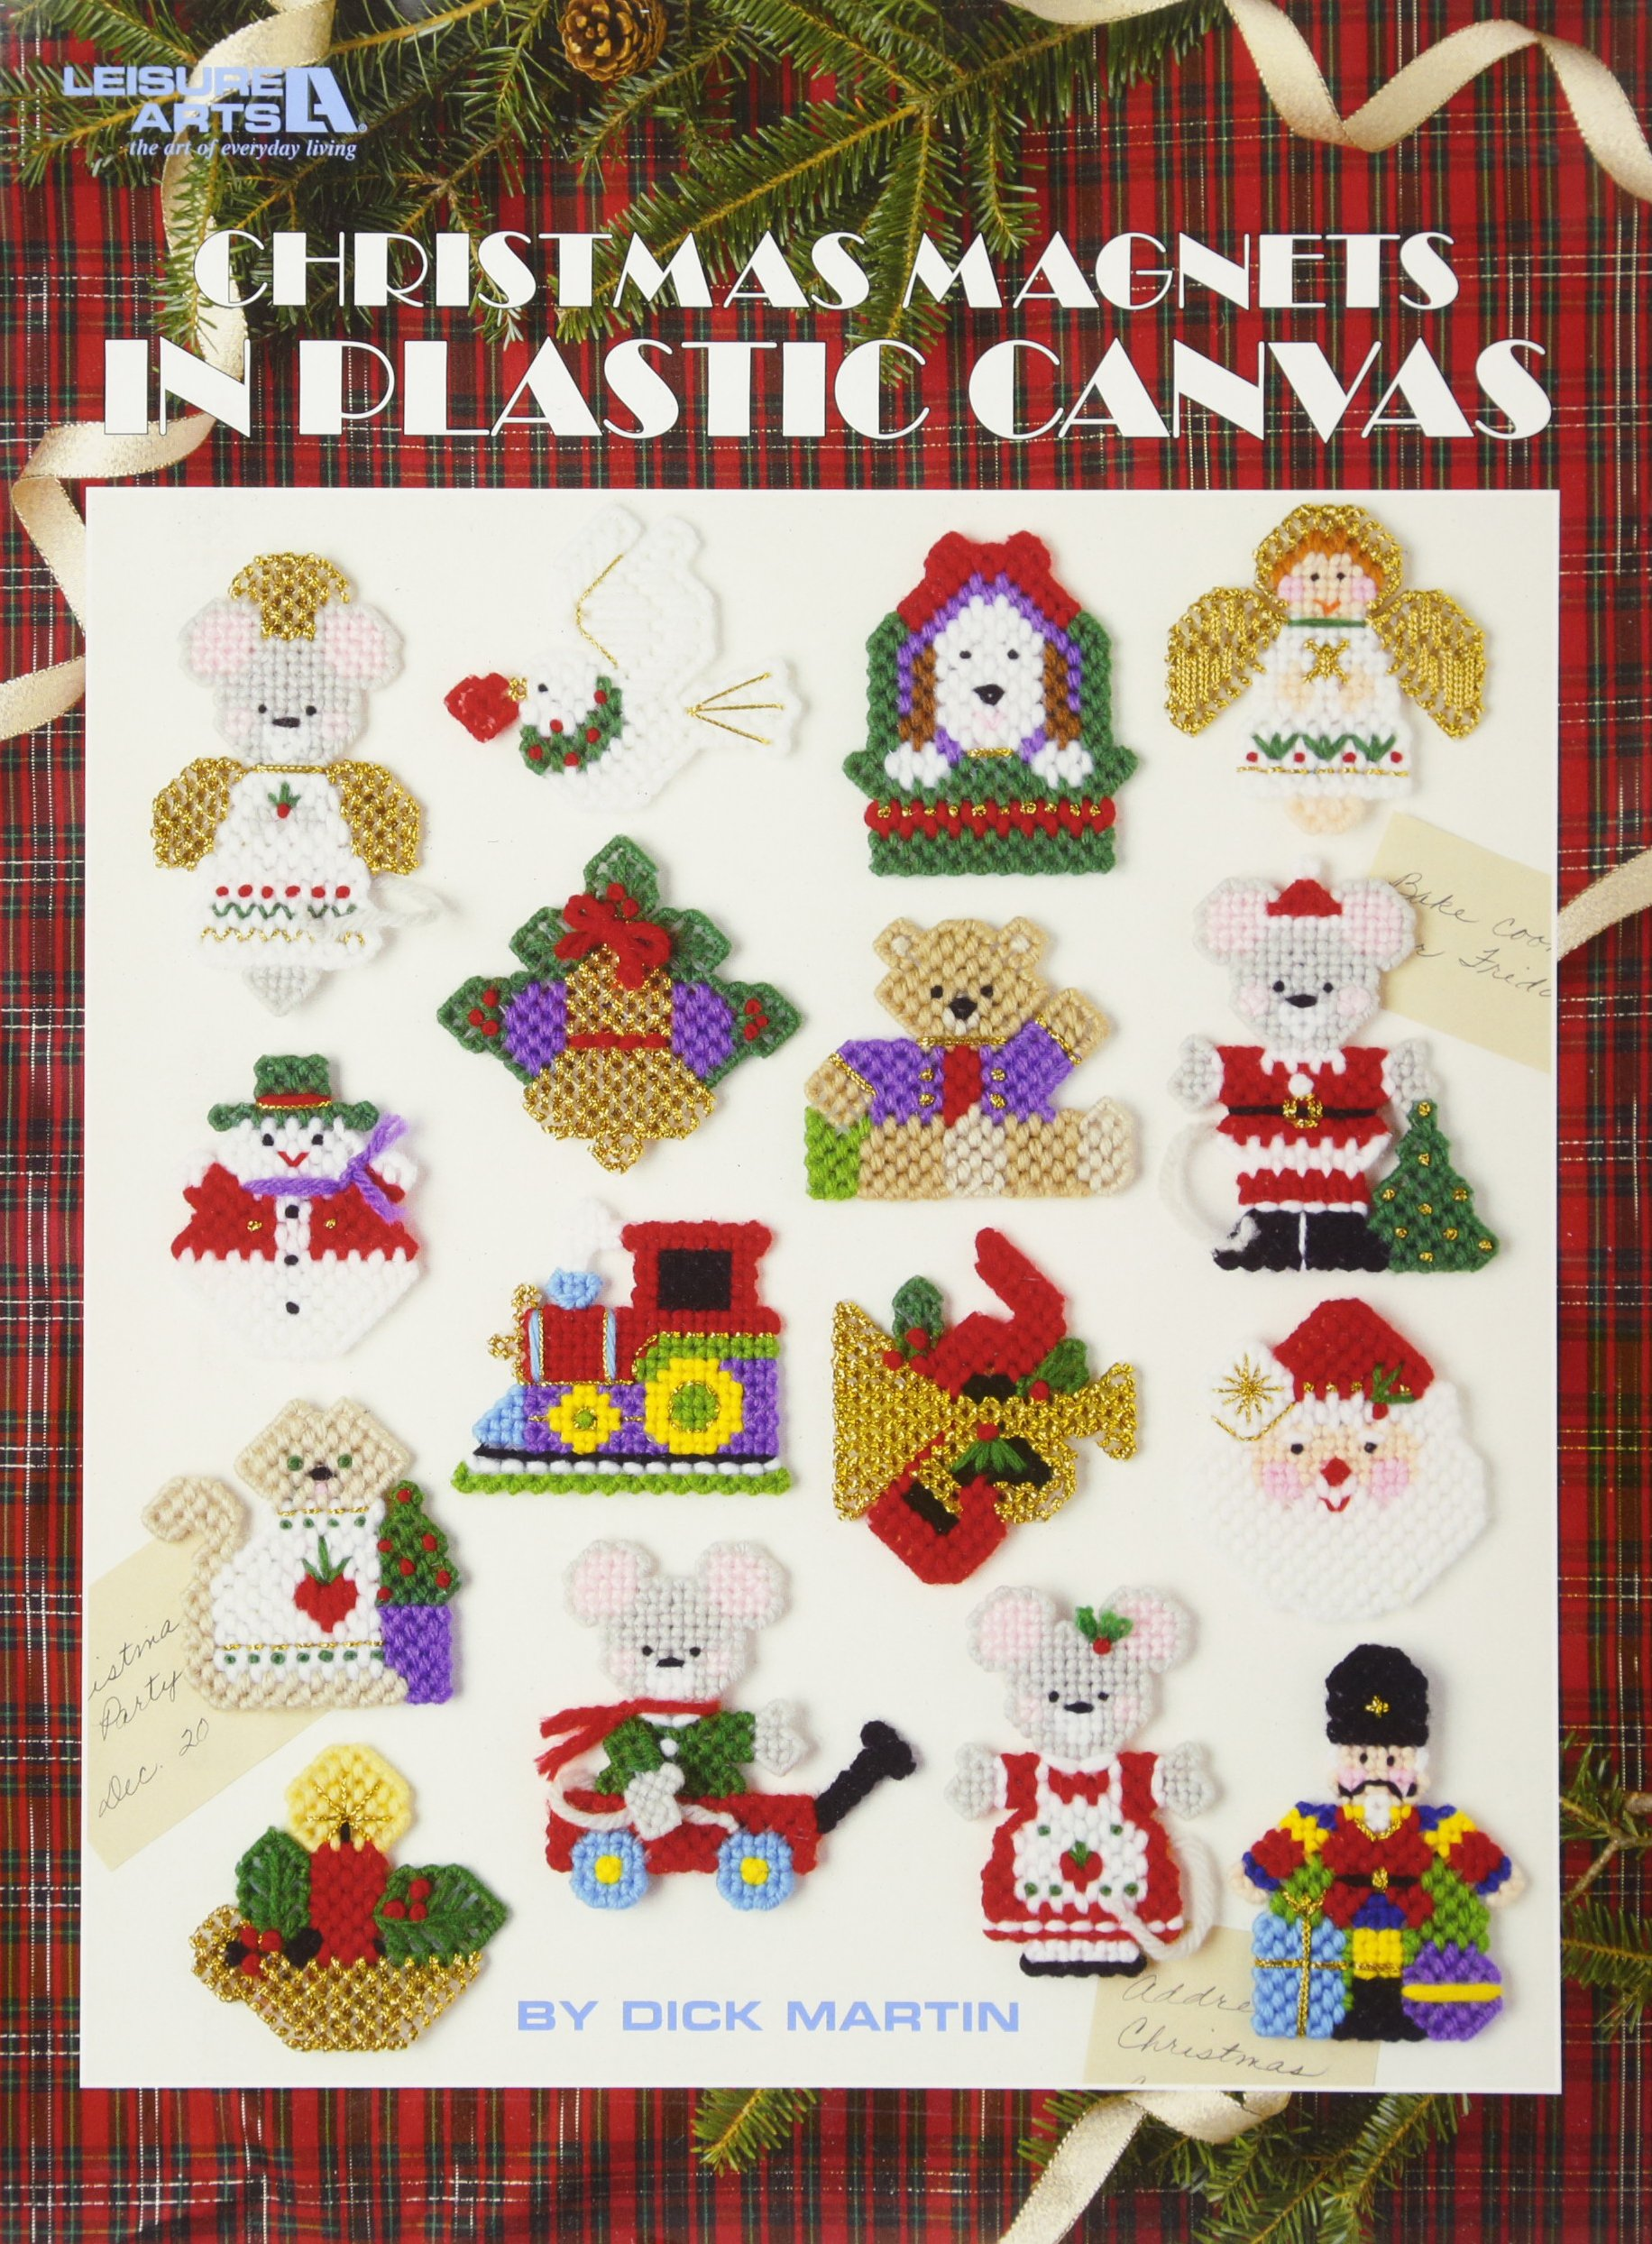 Christmas Magnets in Plastic Canvas  (Leisure Arts #5157)